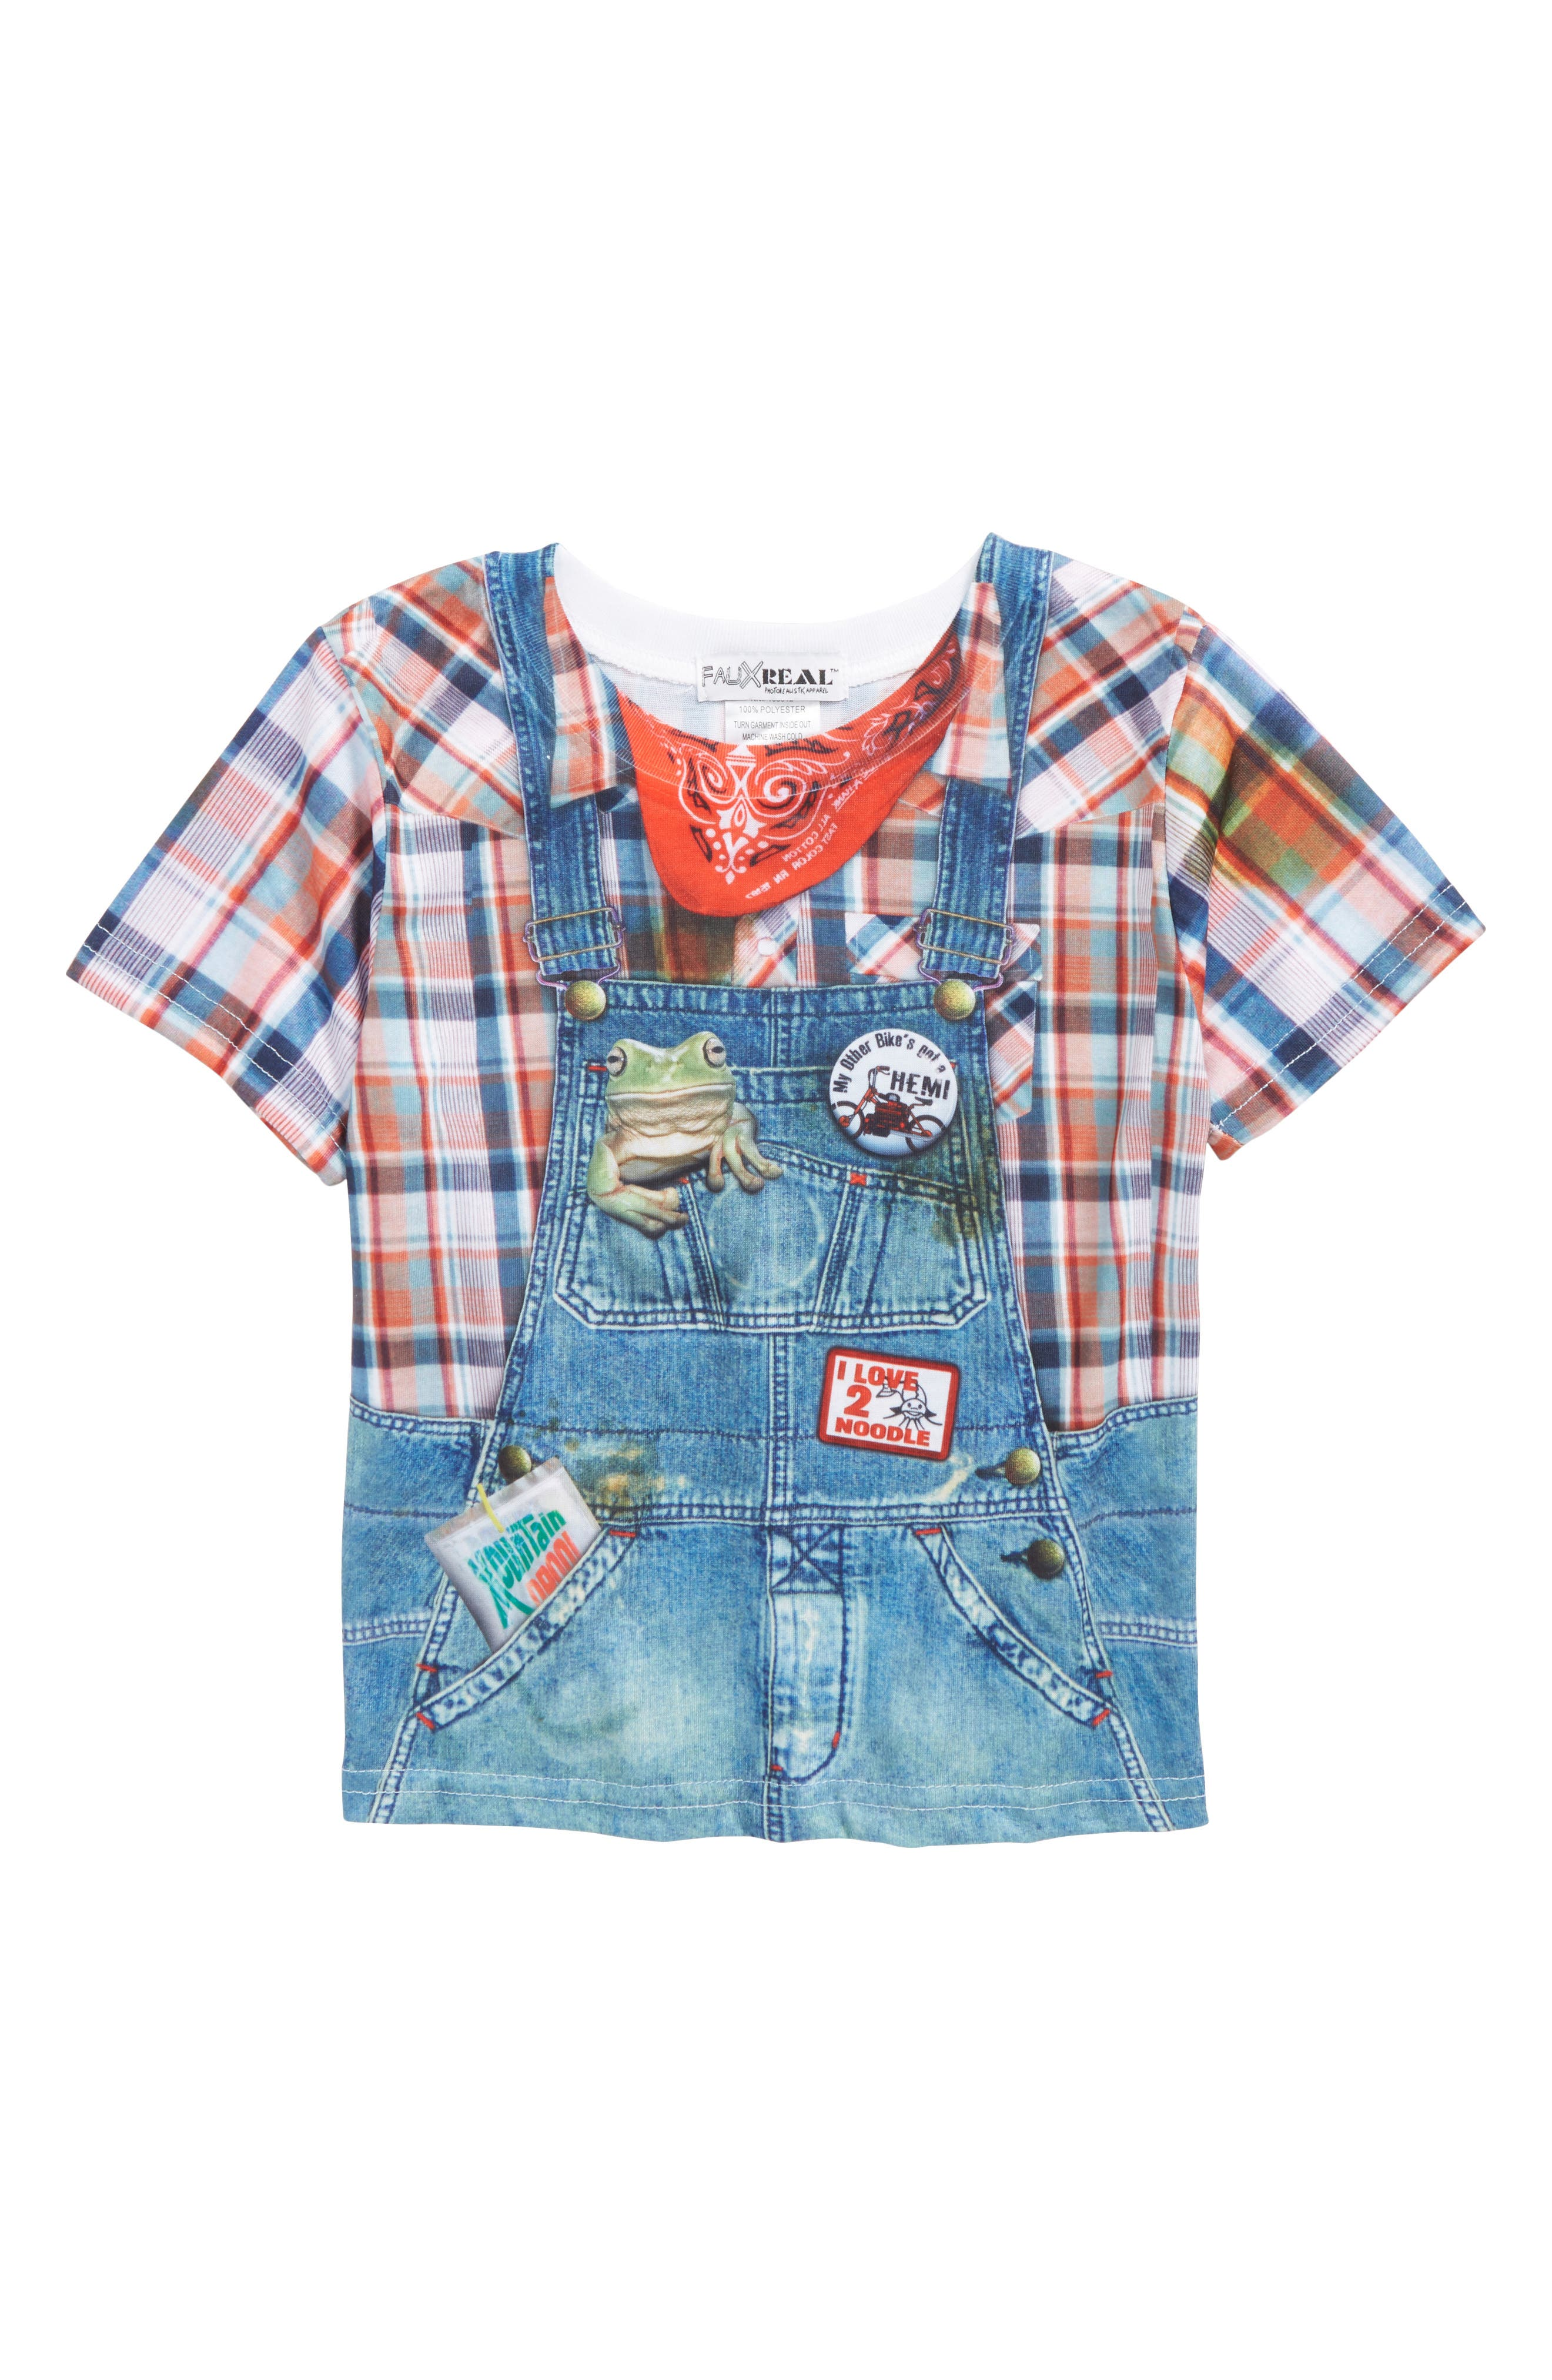 Alternate Image 1 Selected - Faux Real Country Kid T-Shirt (Toddler Boys)